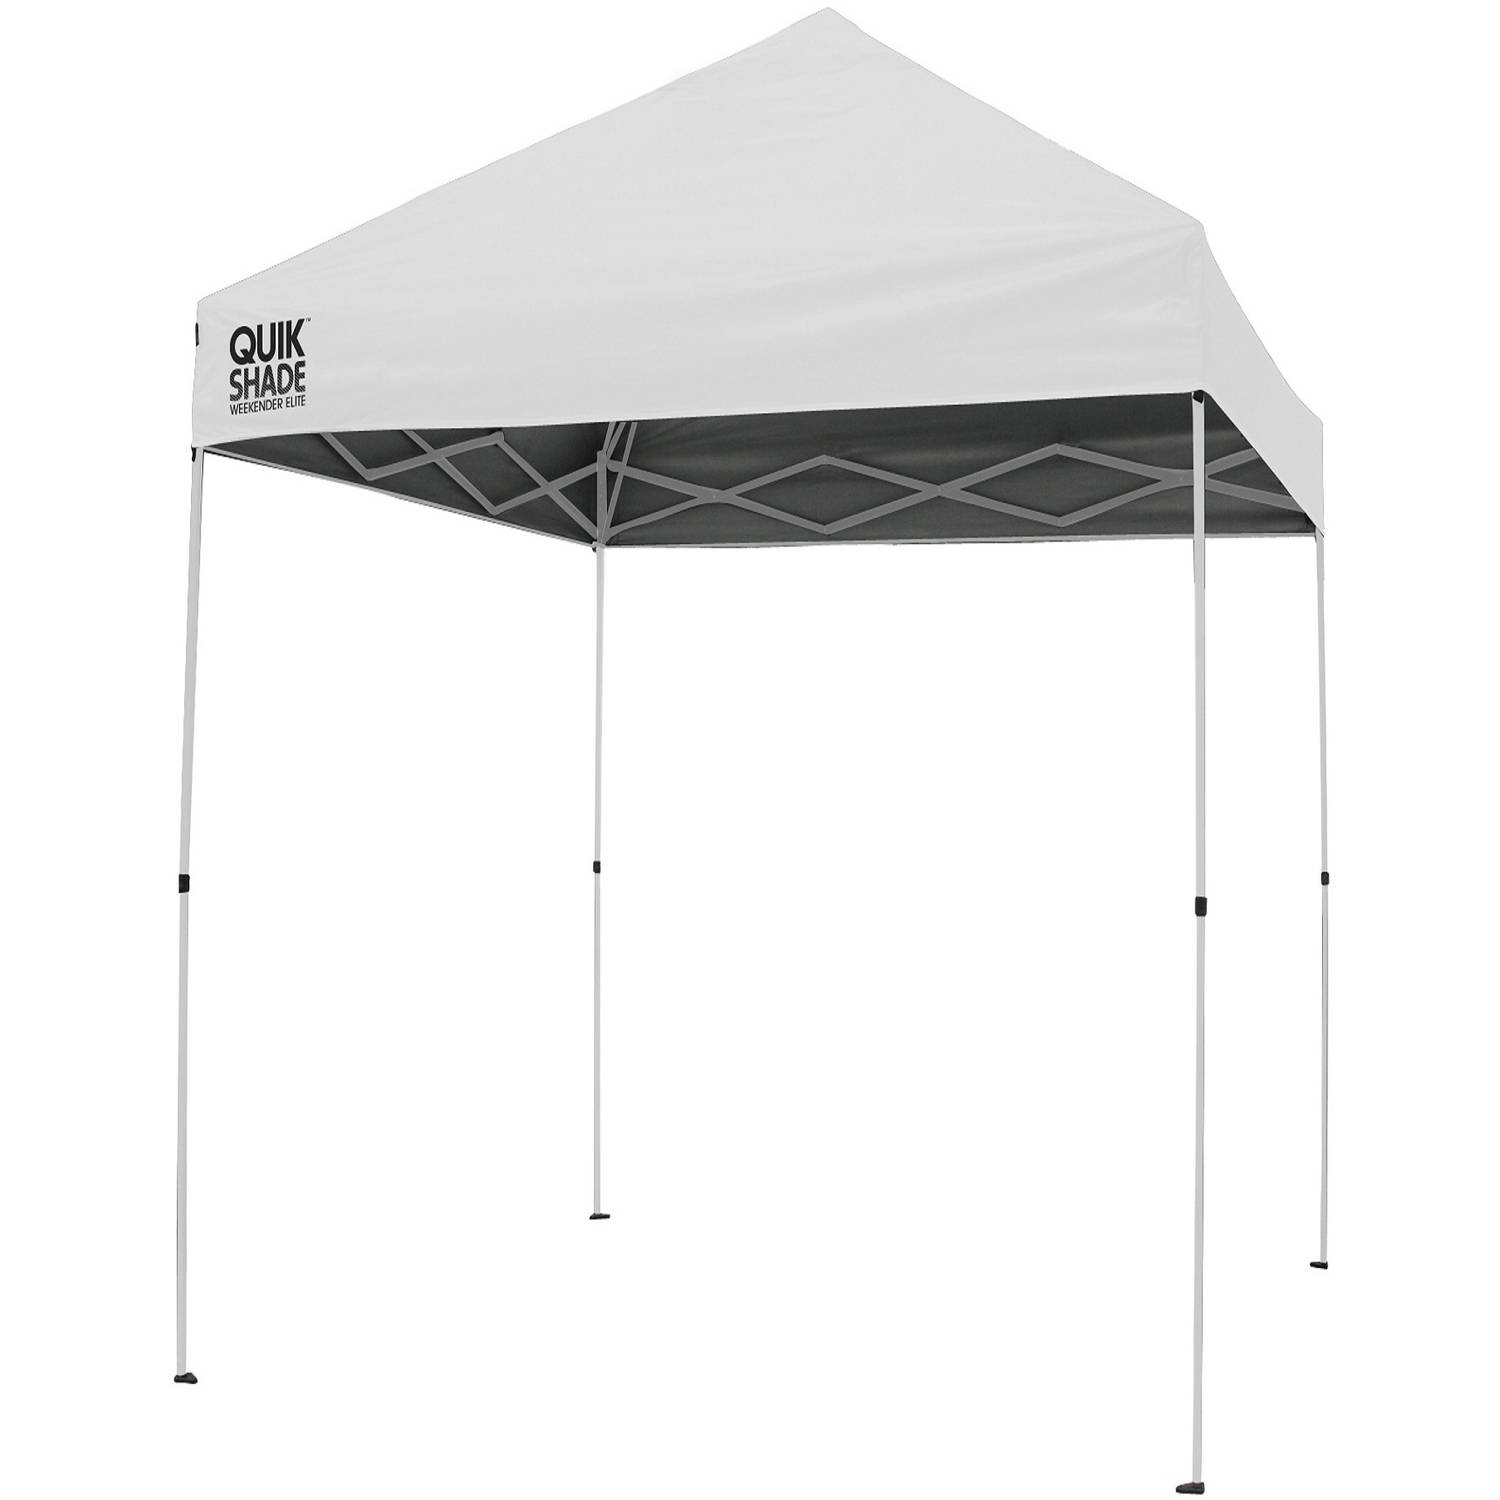 Quik-Shade Excursion WE100NL 10' x 10' Instant Canopy, White by Bravo Sports